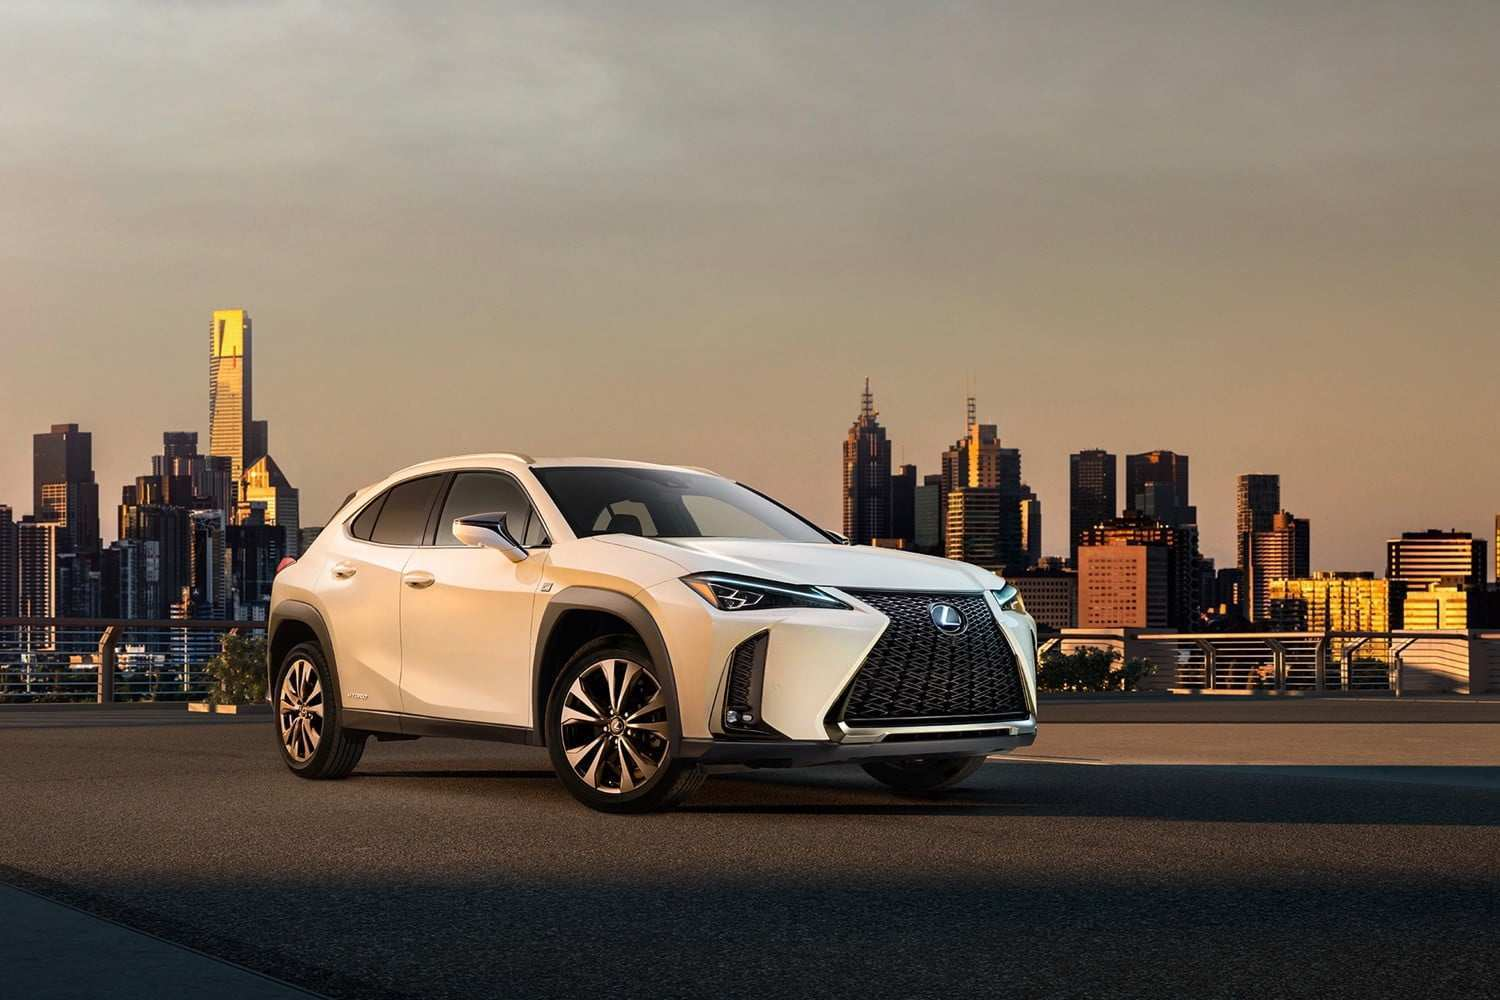 51 Gallery of Lexus 2020 Suv Ux Research New for Lexus 2020 Suv Ux